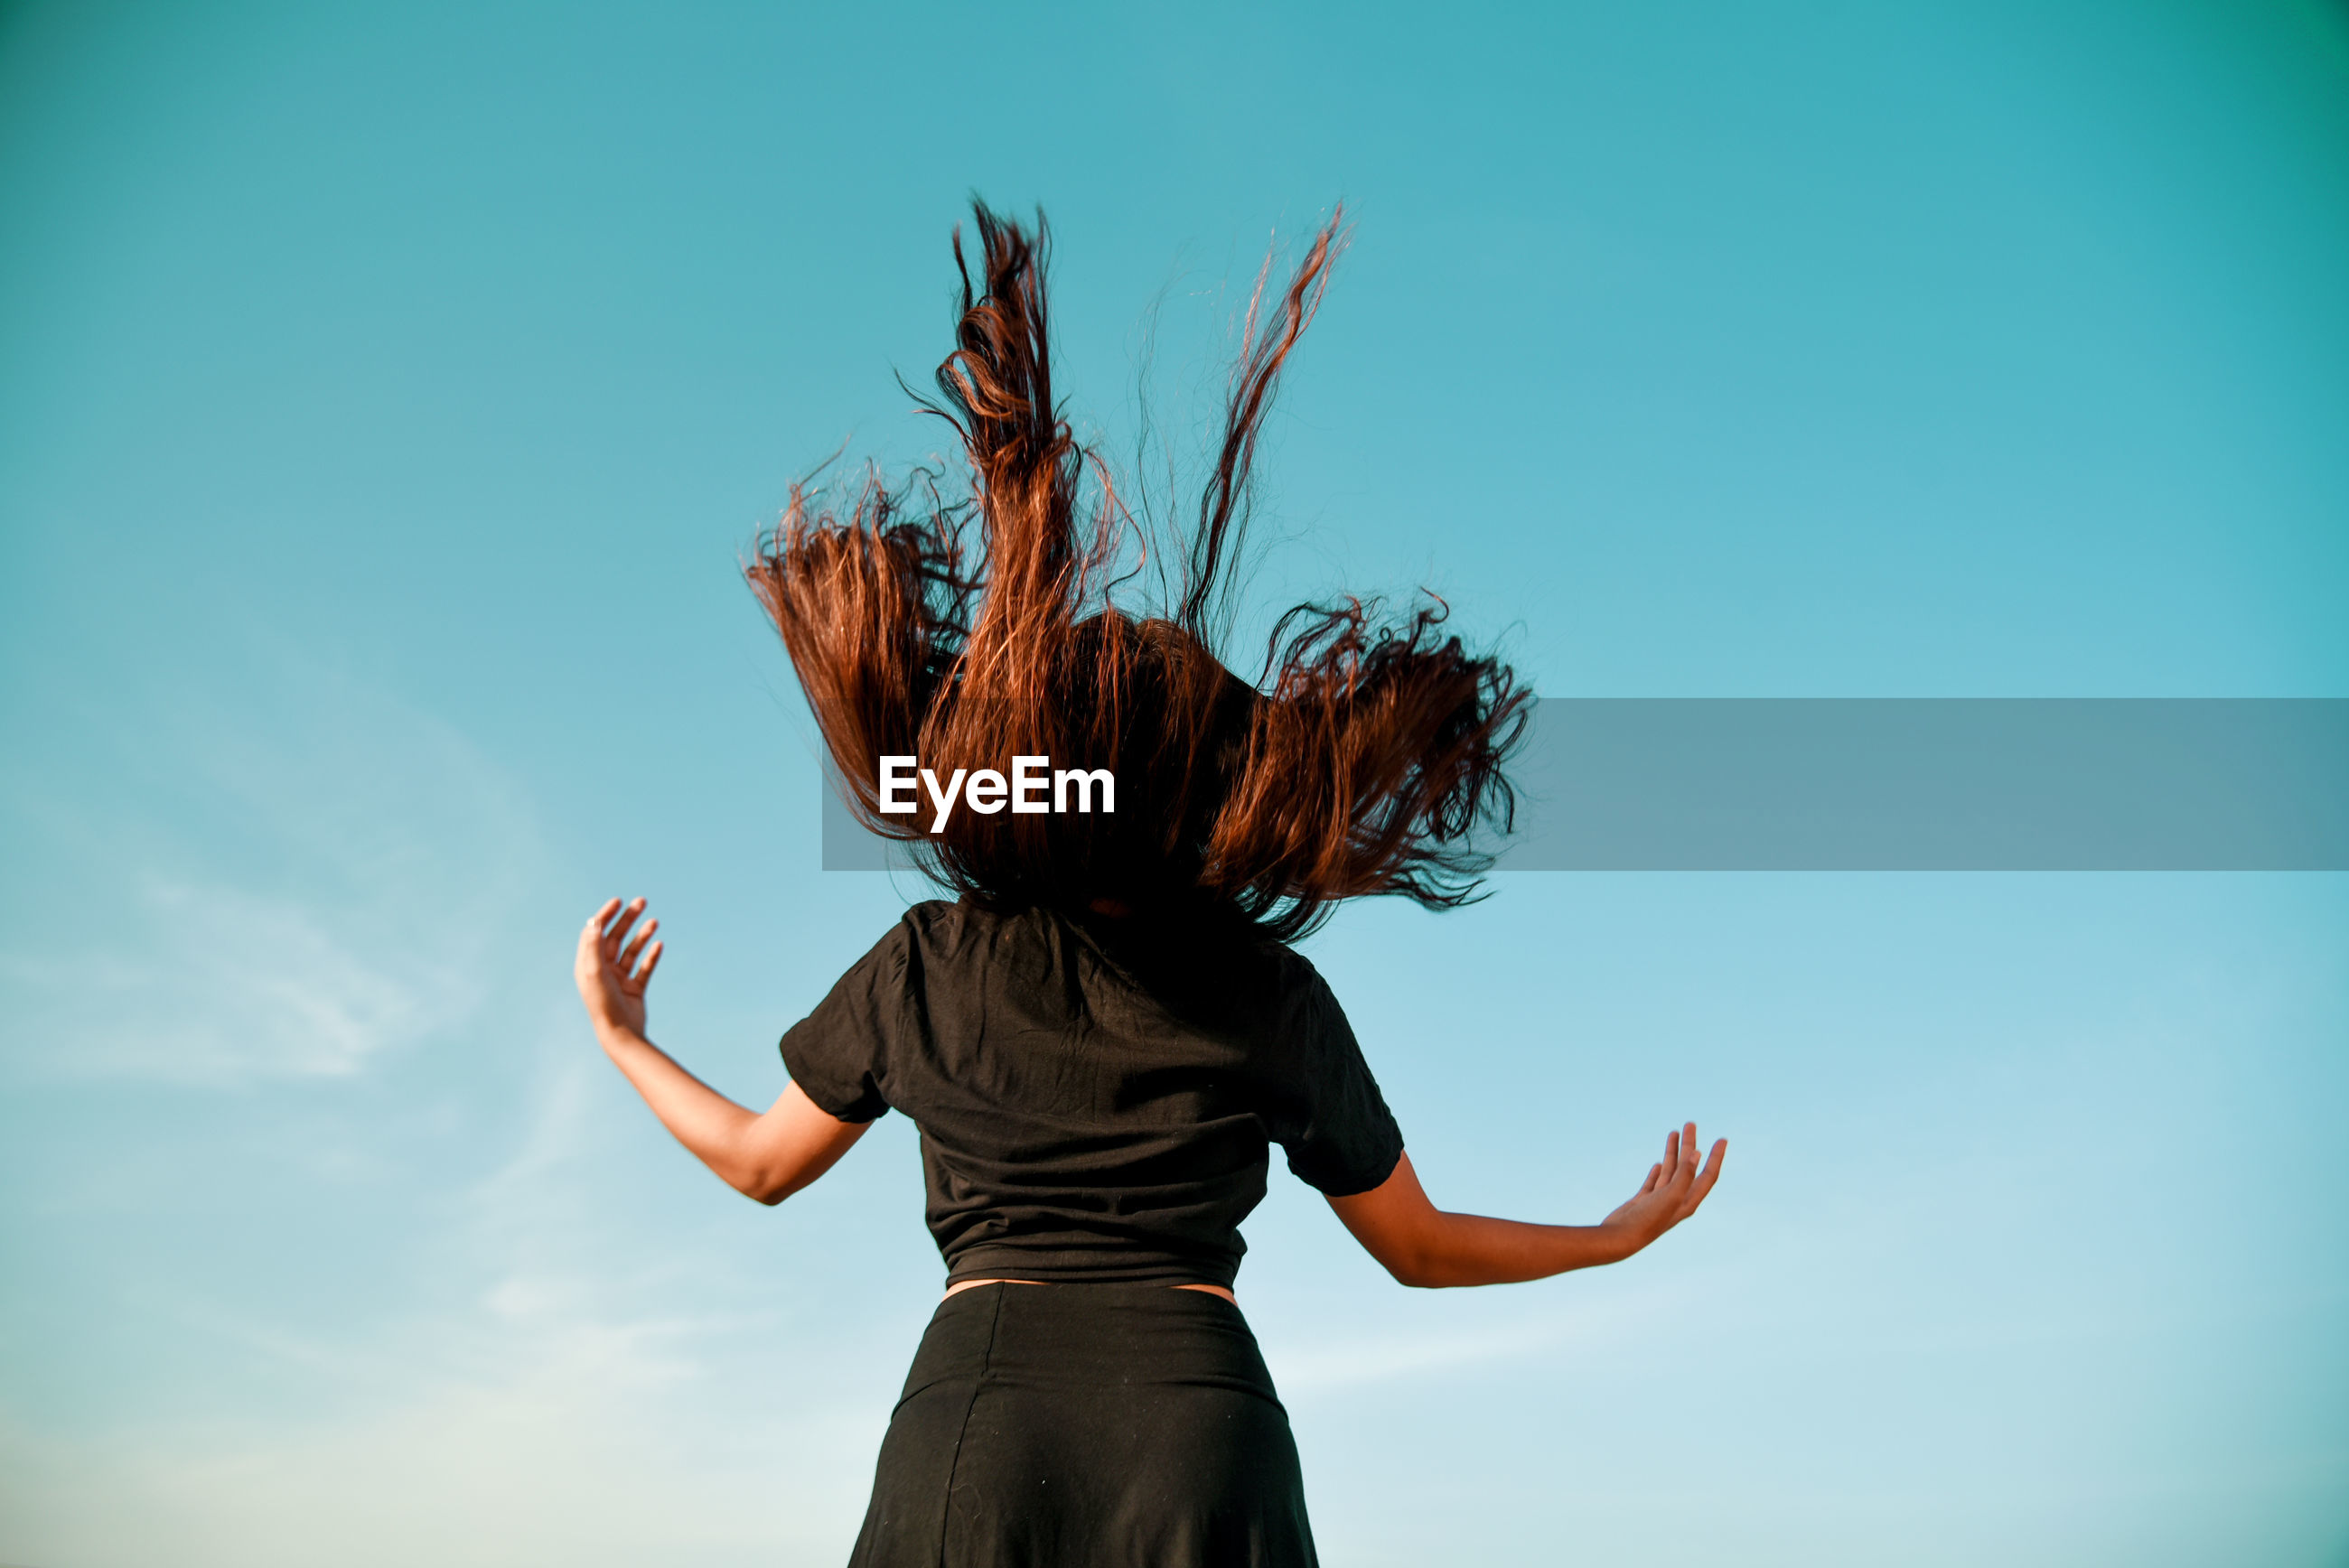 Rear view of woman tossing hair against sky